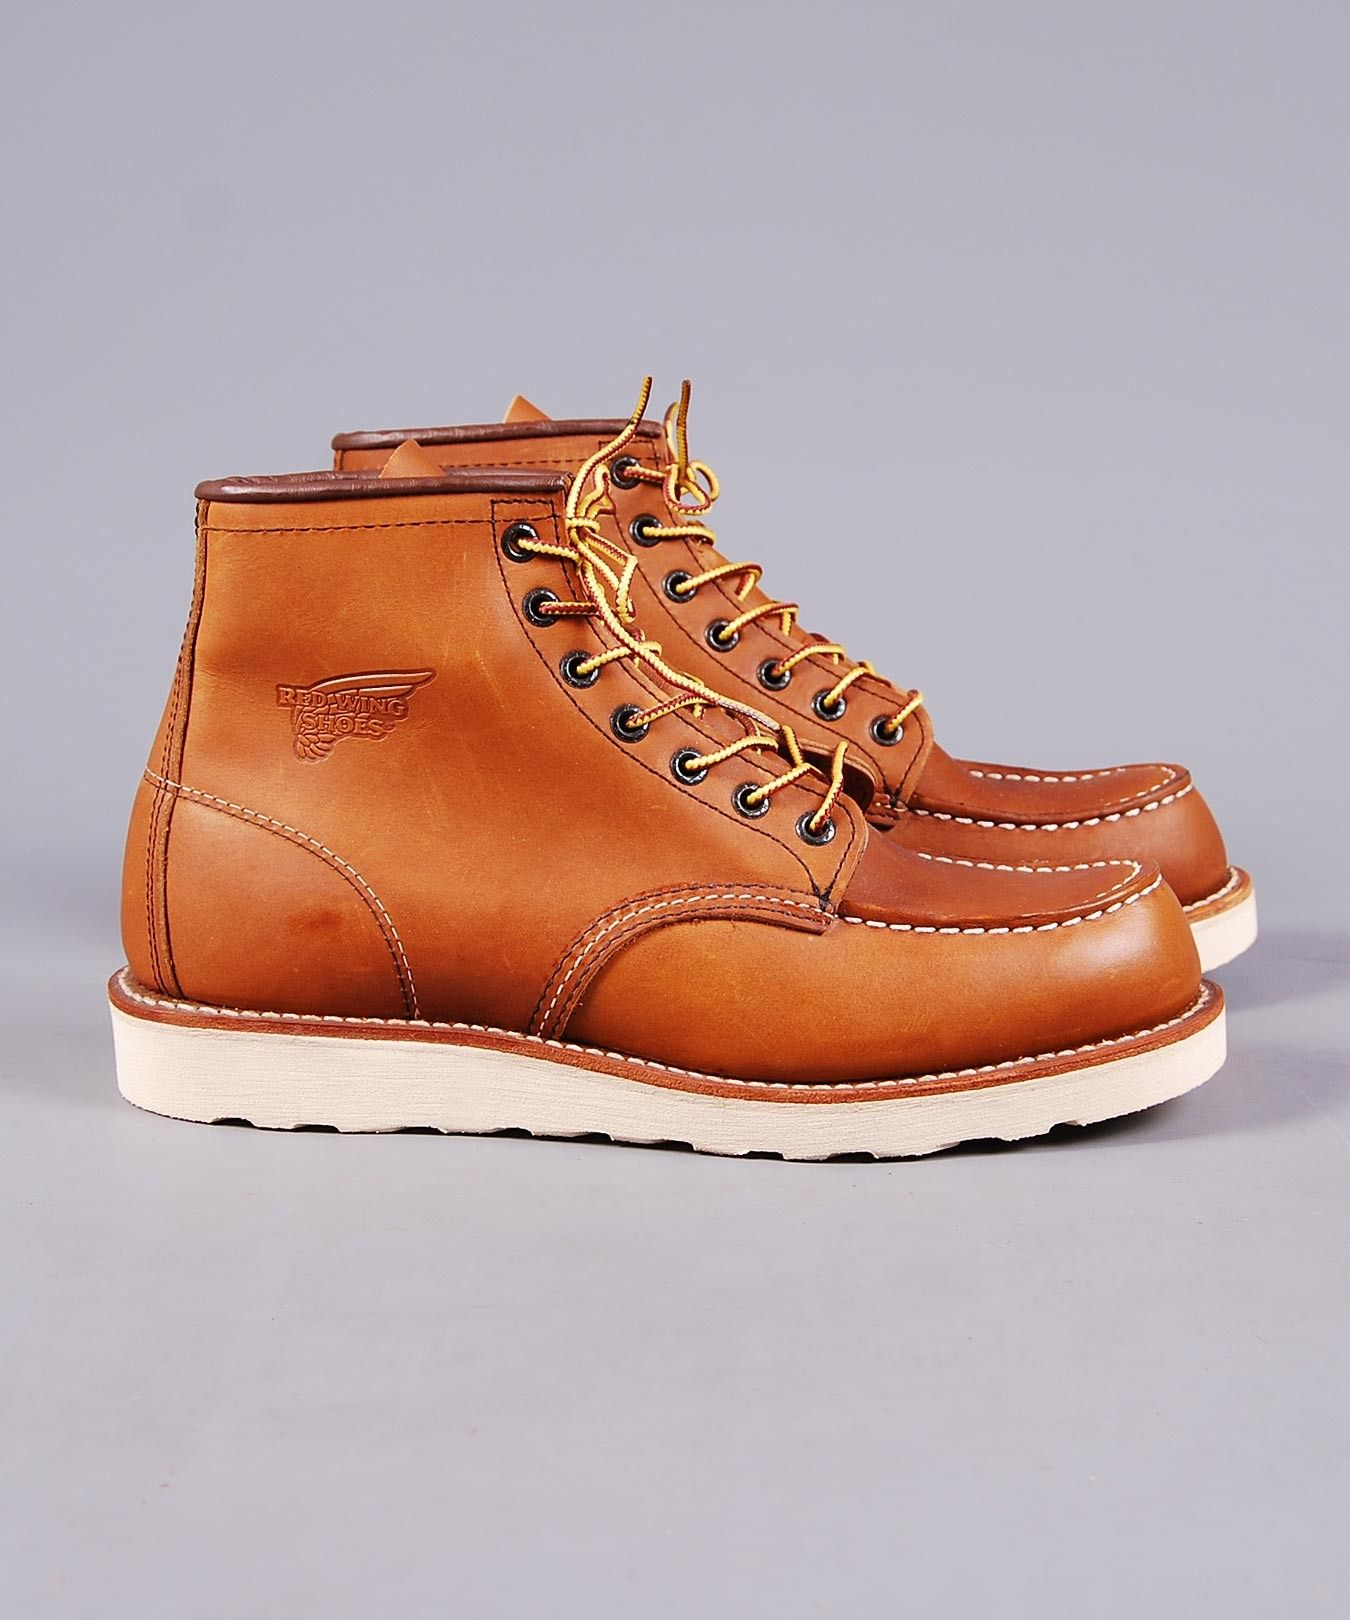 Red Wing Boots Sale - Cr Boot